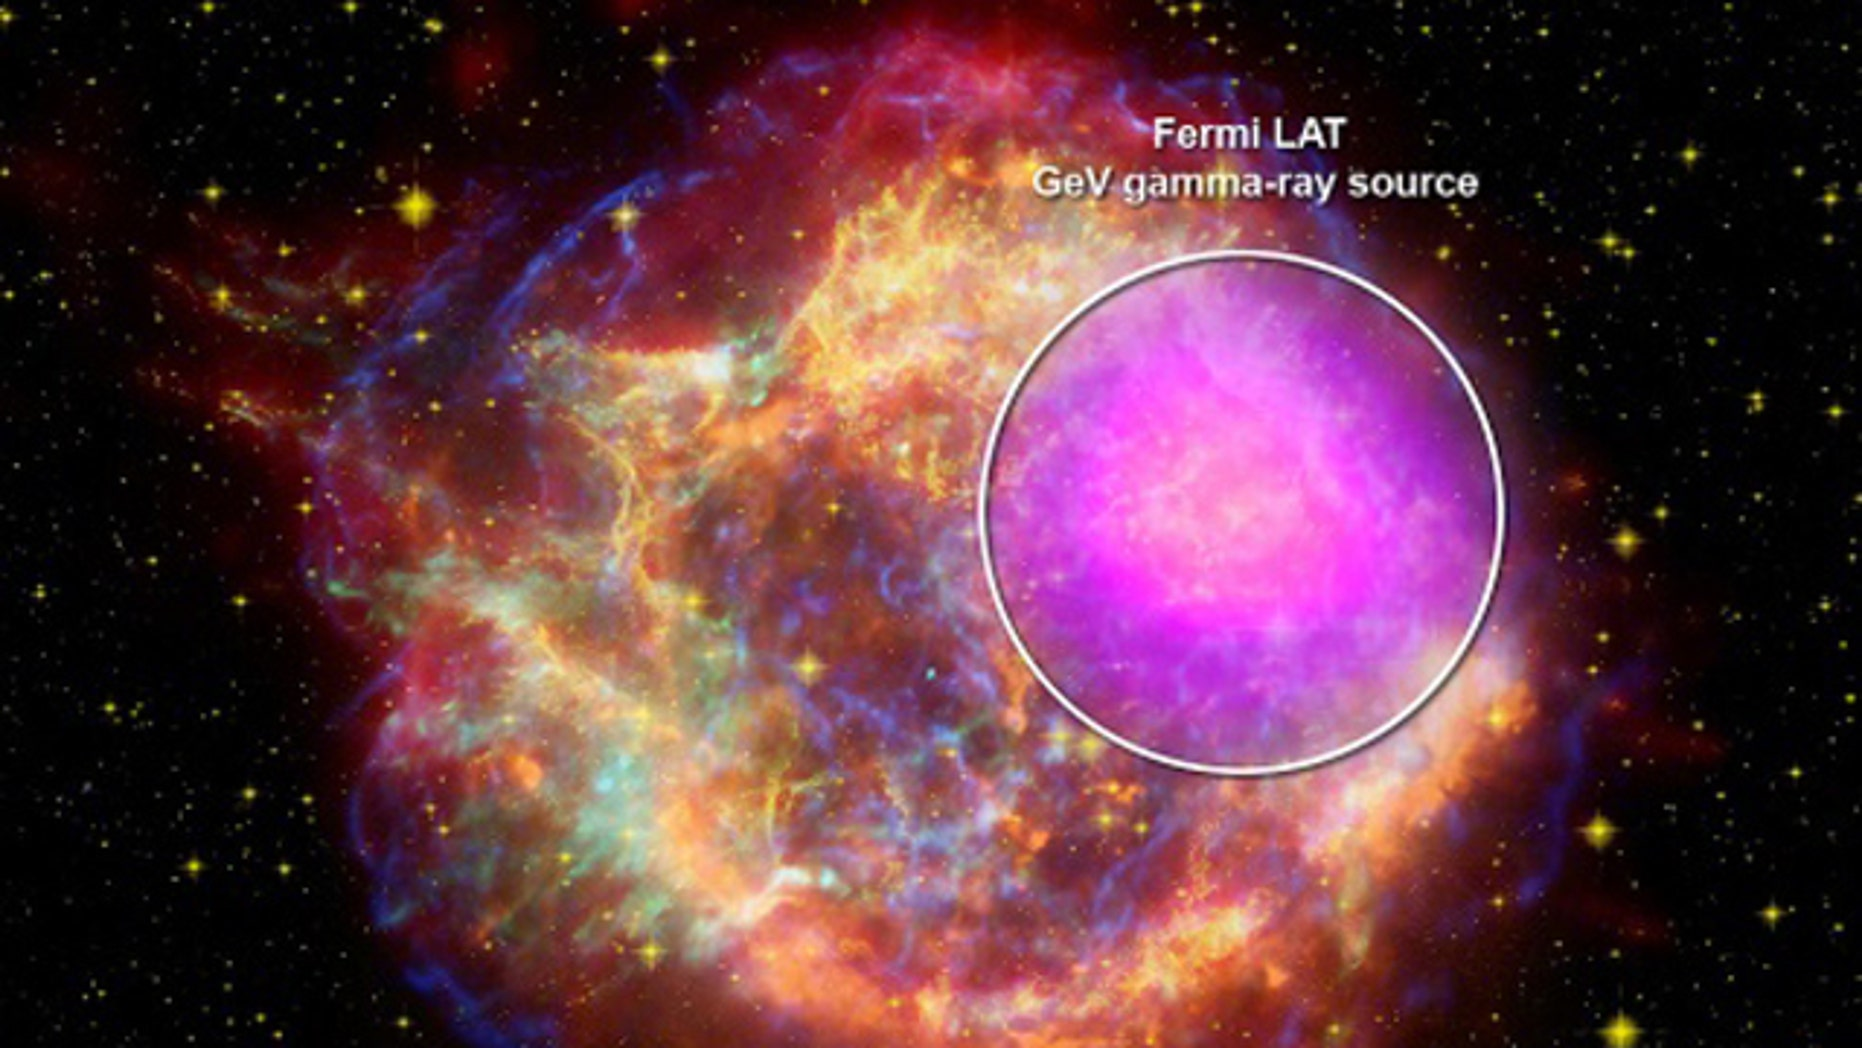 A NASA image shows the remnants of a supernova. A telescope acting like a huge digital camera can capture the gamma rays the ancient explosion emitted.